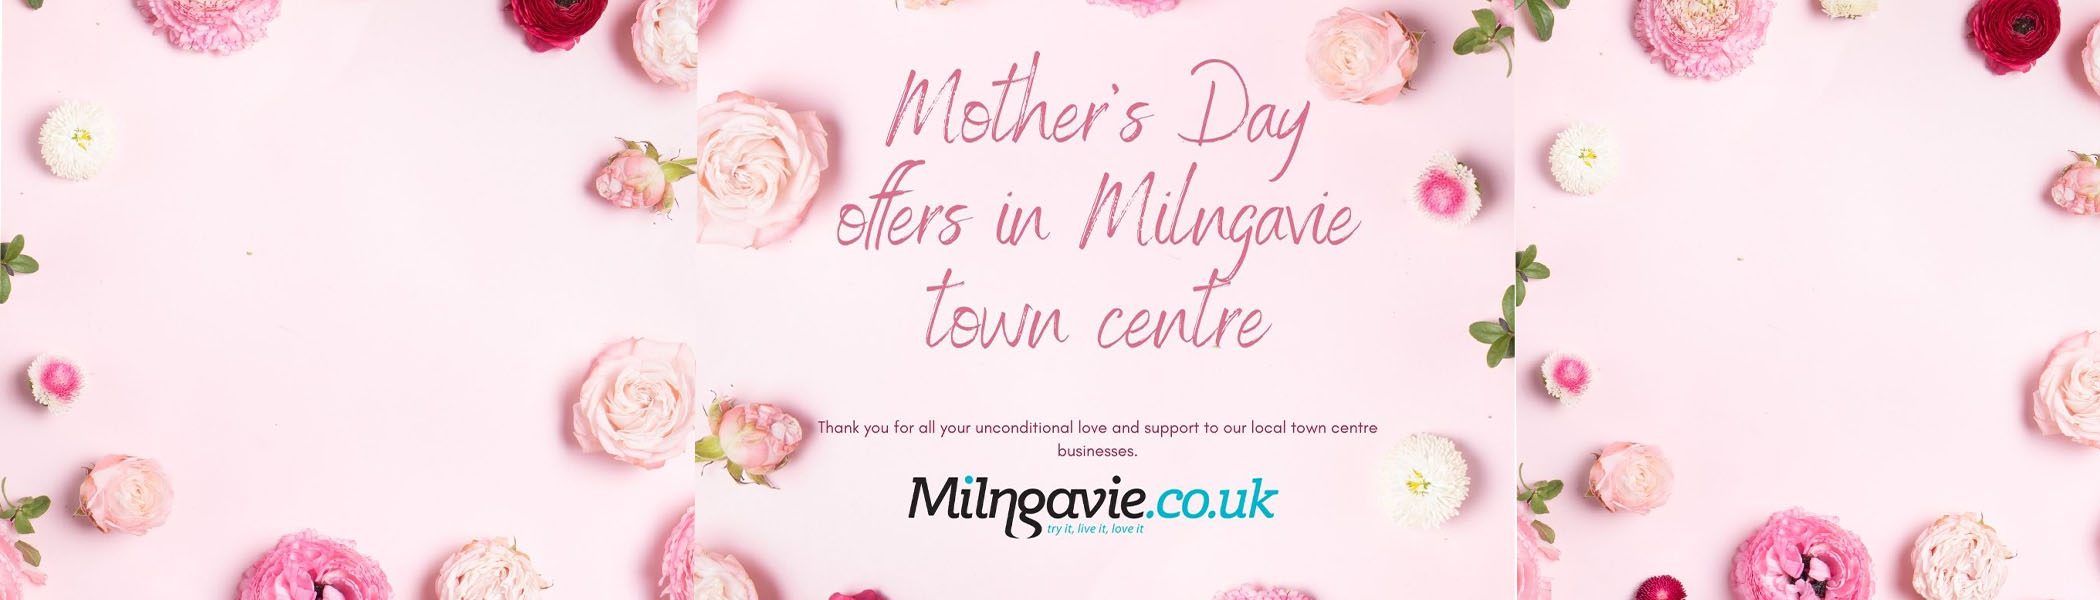 Mothers-Day 2021